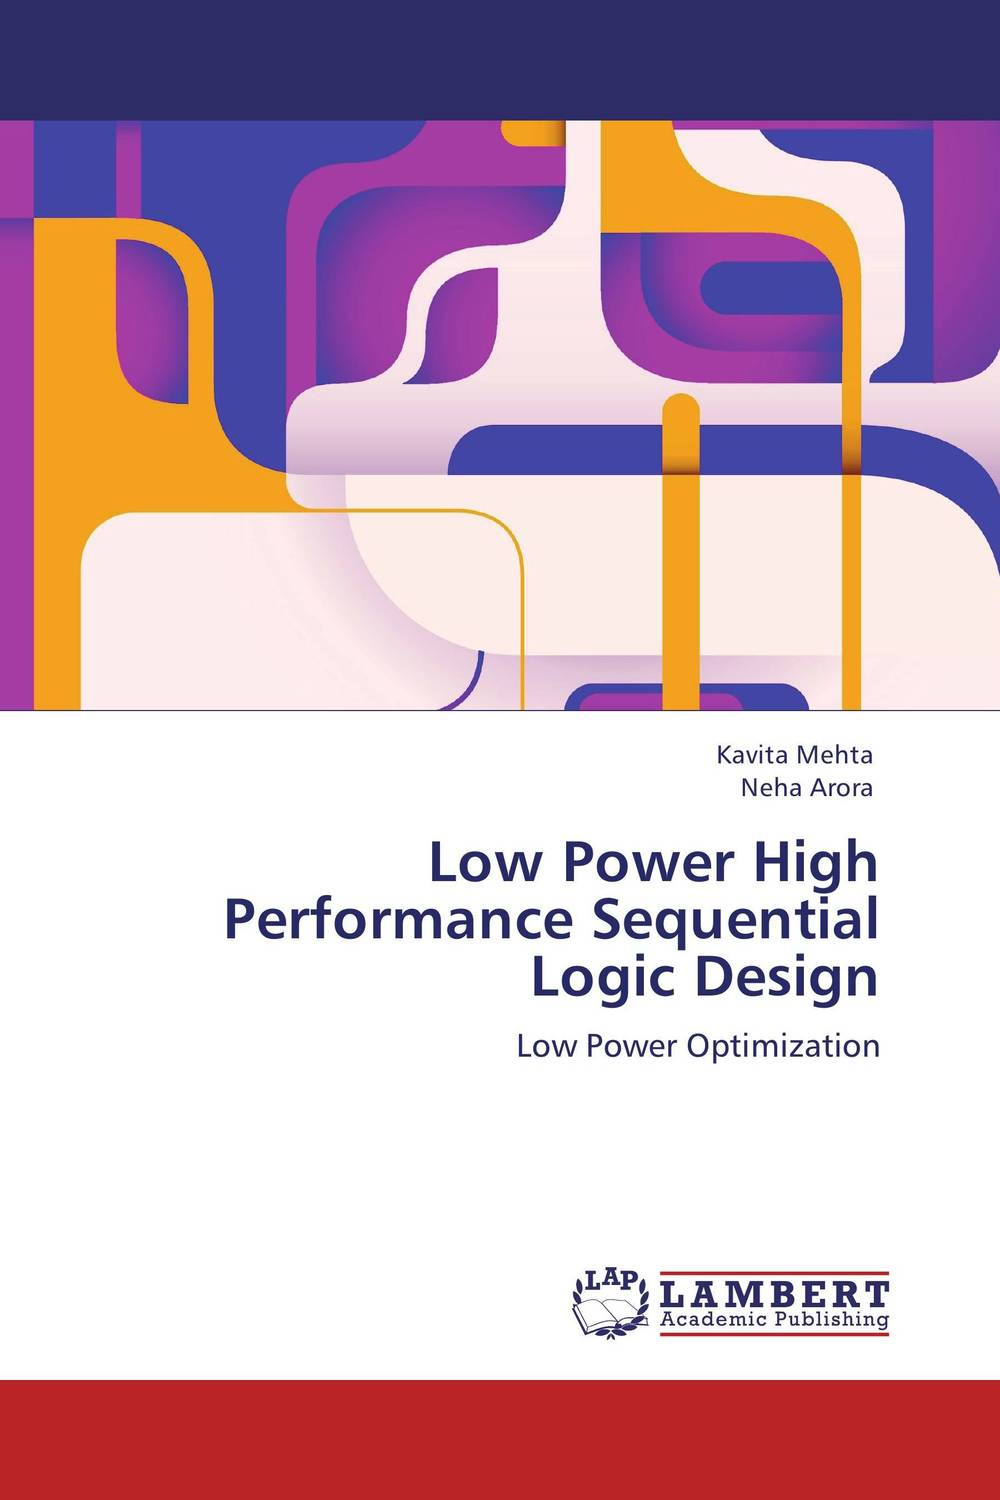 Low Power High Performance Sequential Logic Design ayman eltaliawy hassan mostafa and yehea ismail circuit design techniques for microscale energy harvesting systems